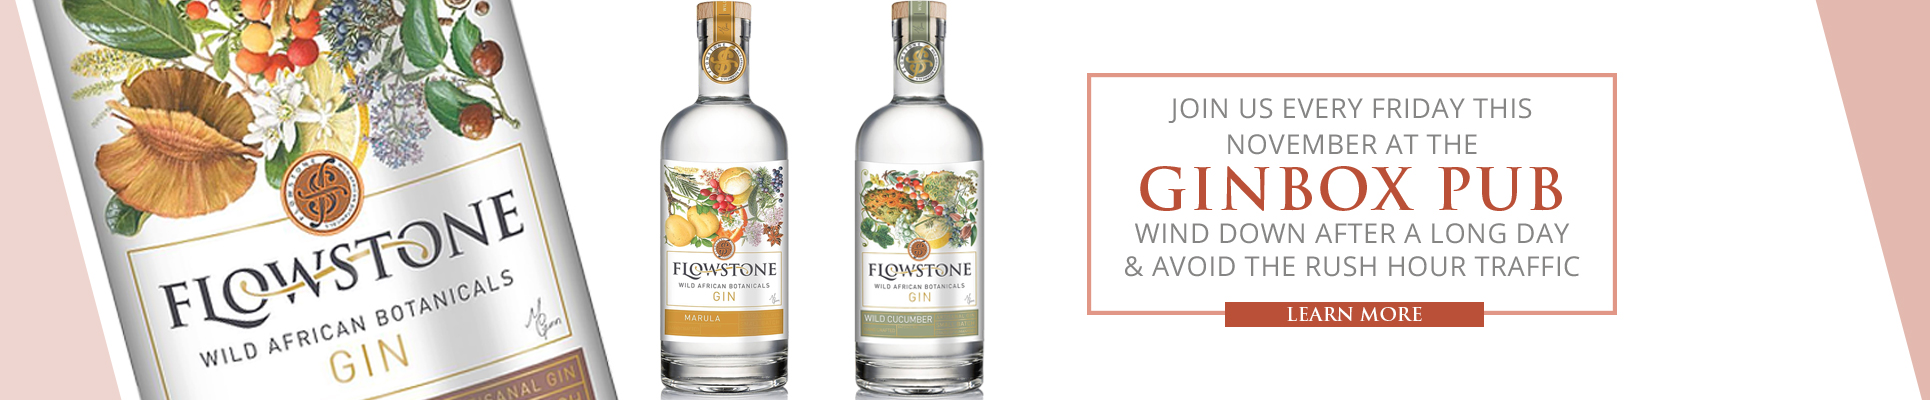 Come join us for Gin cocktails and amazing food at the Ginbox Pub! Misty Hills and Flowstone Gin every Fridays this November from 4-6pm